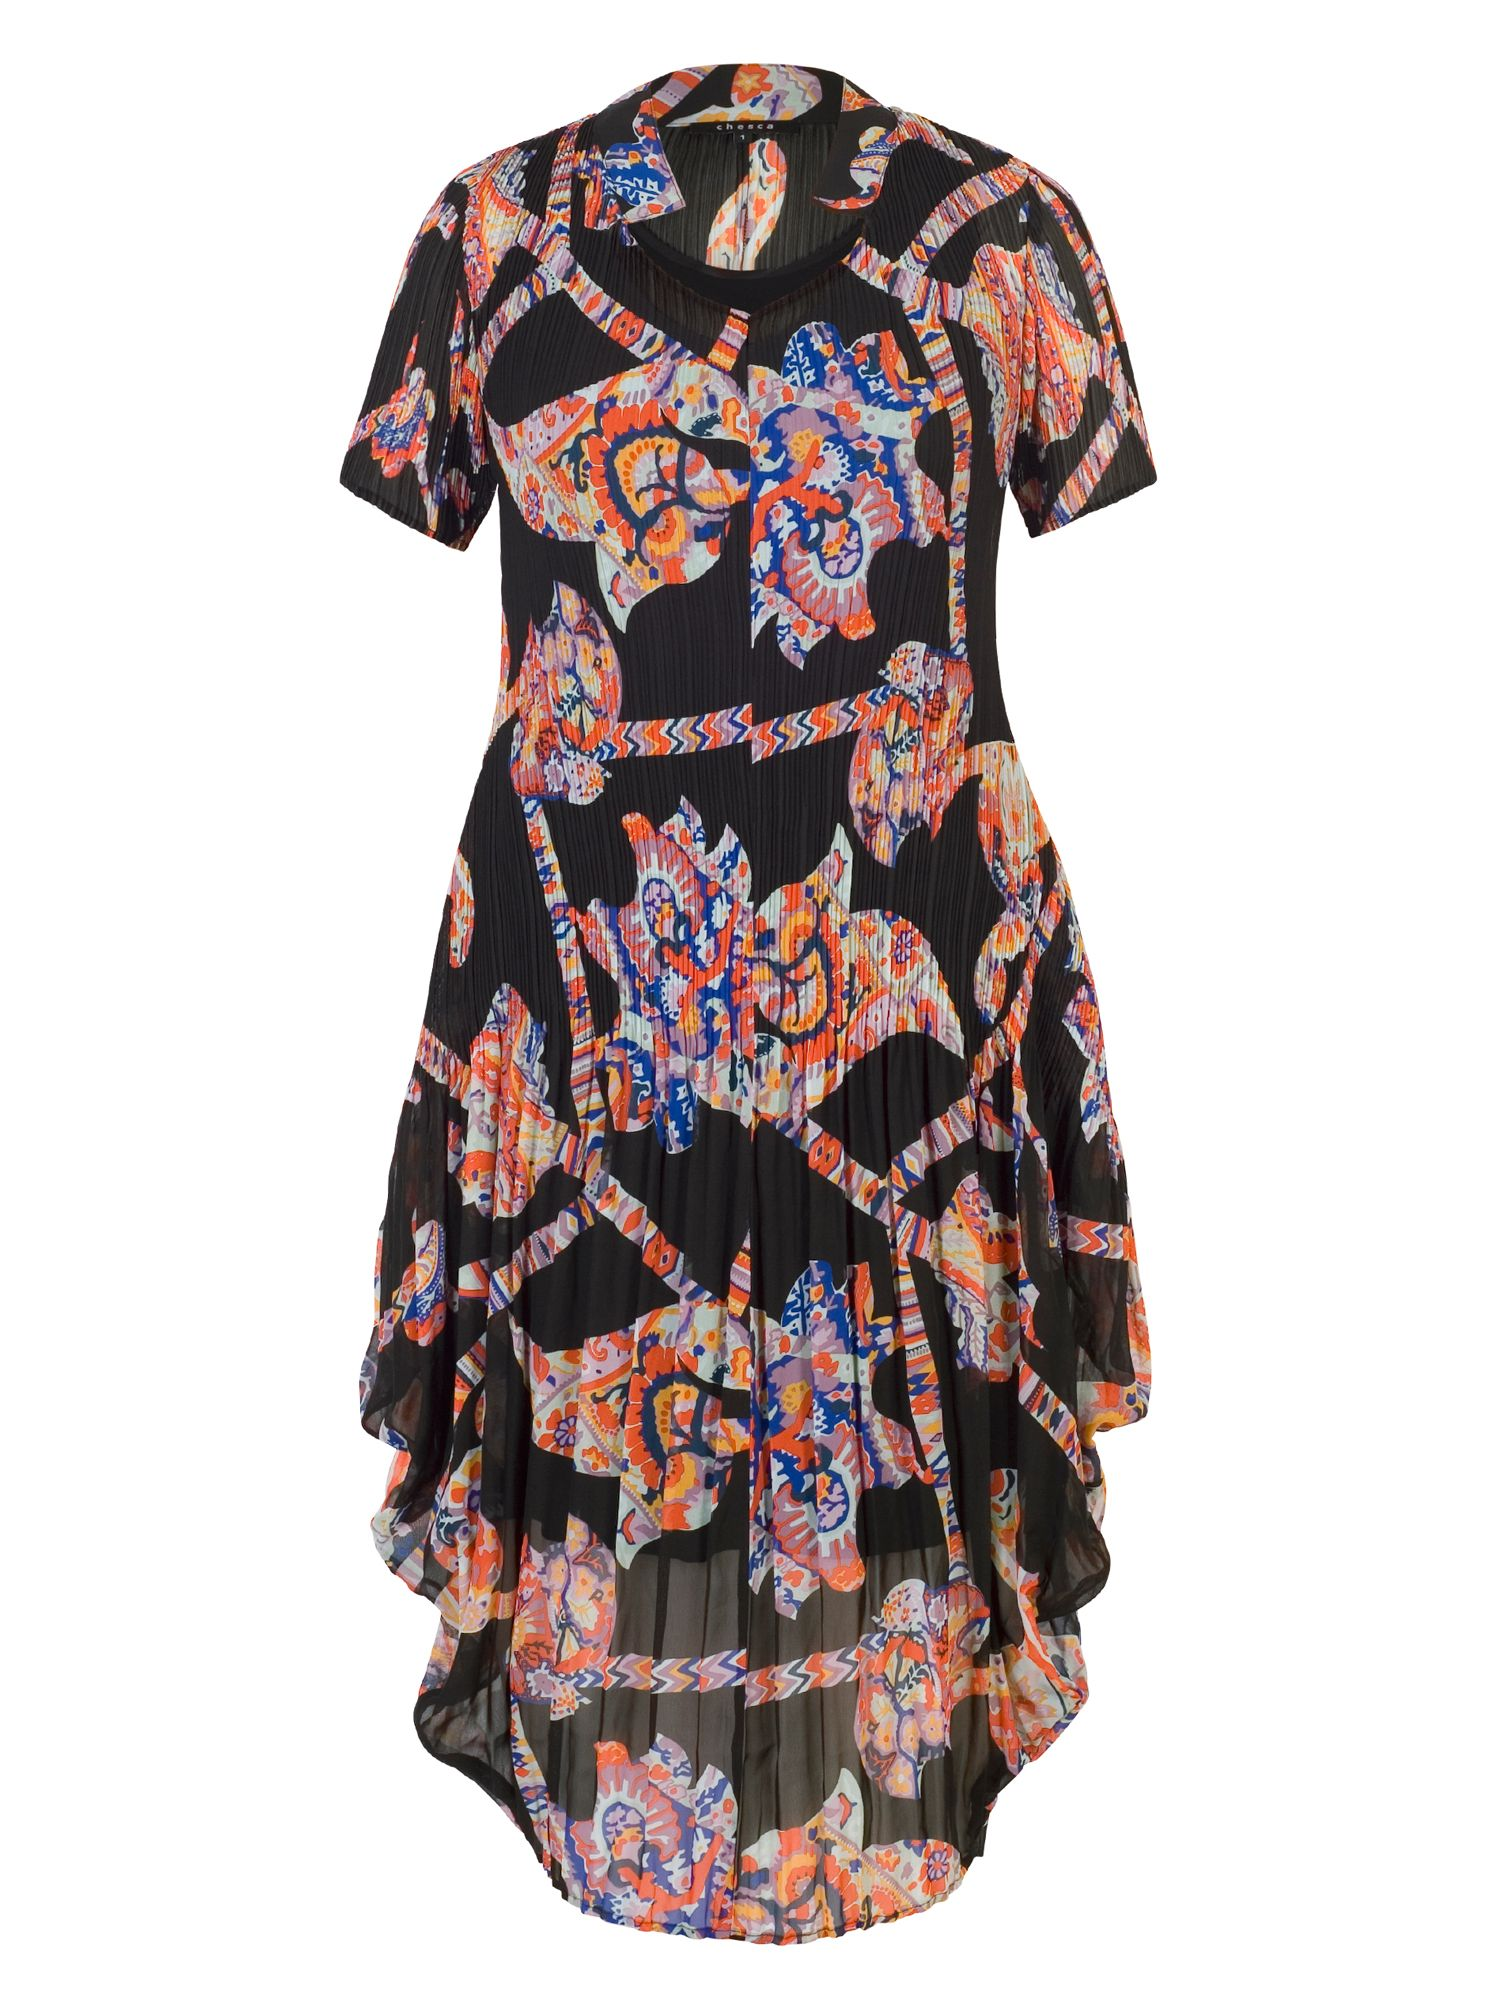 Chesca Abstract Print Crush Pleat Dress, Multi-Coloured